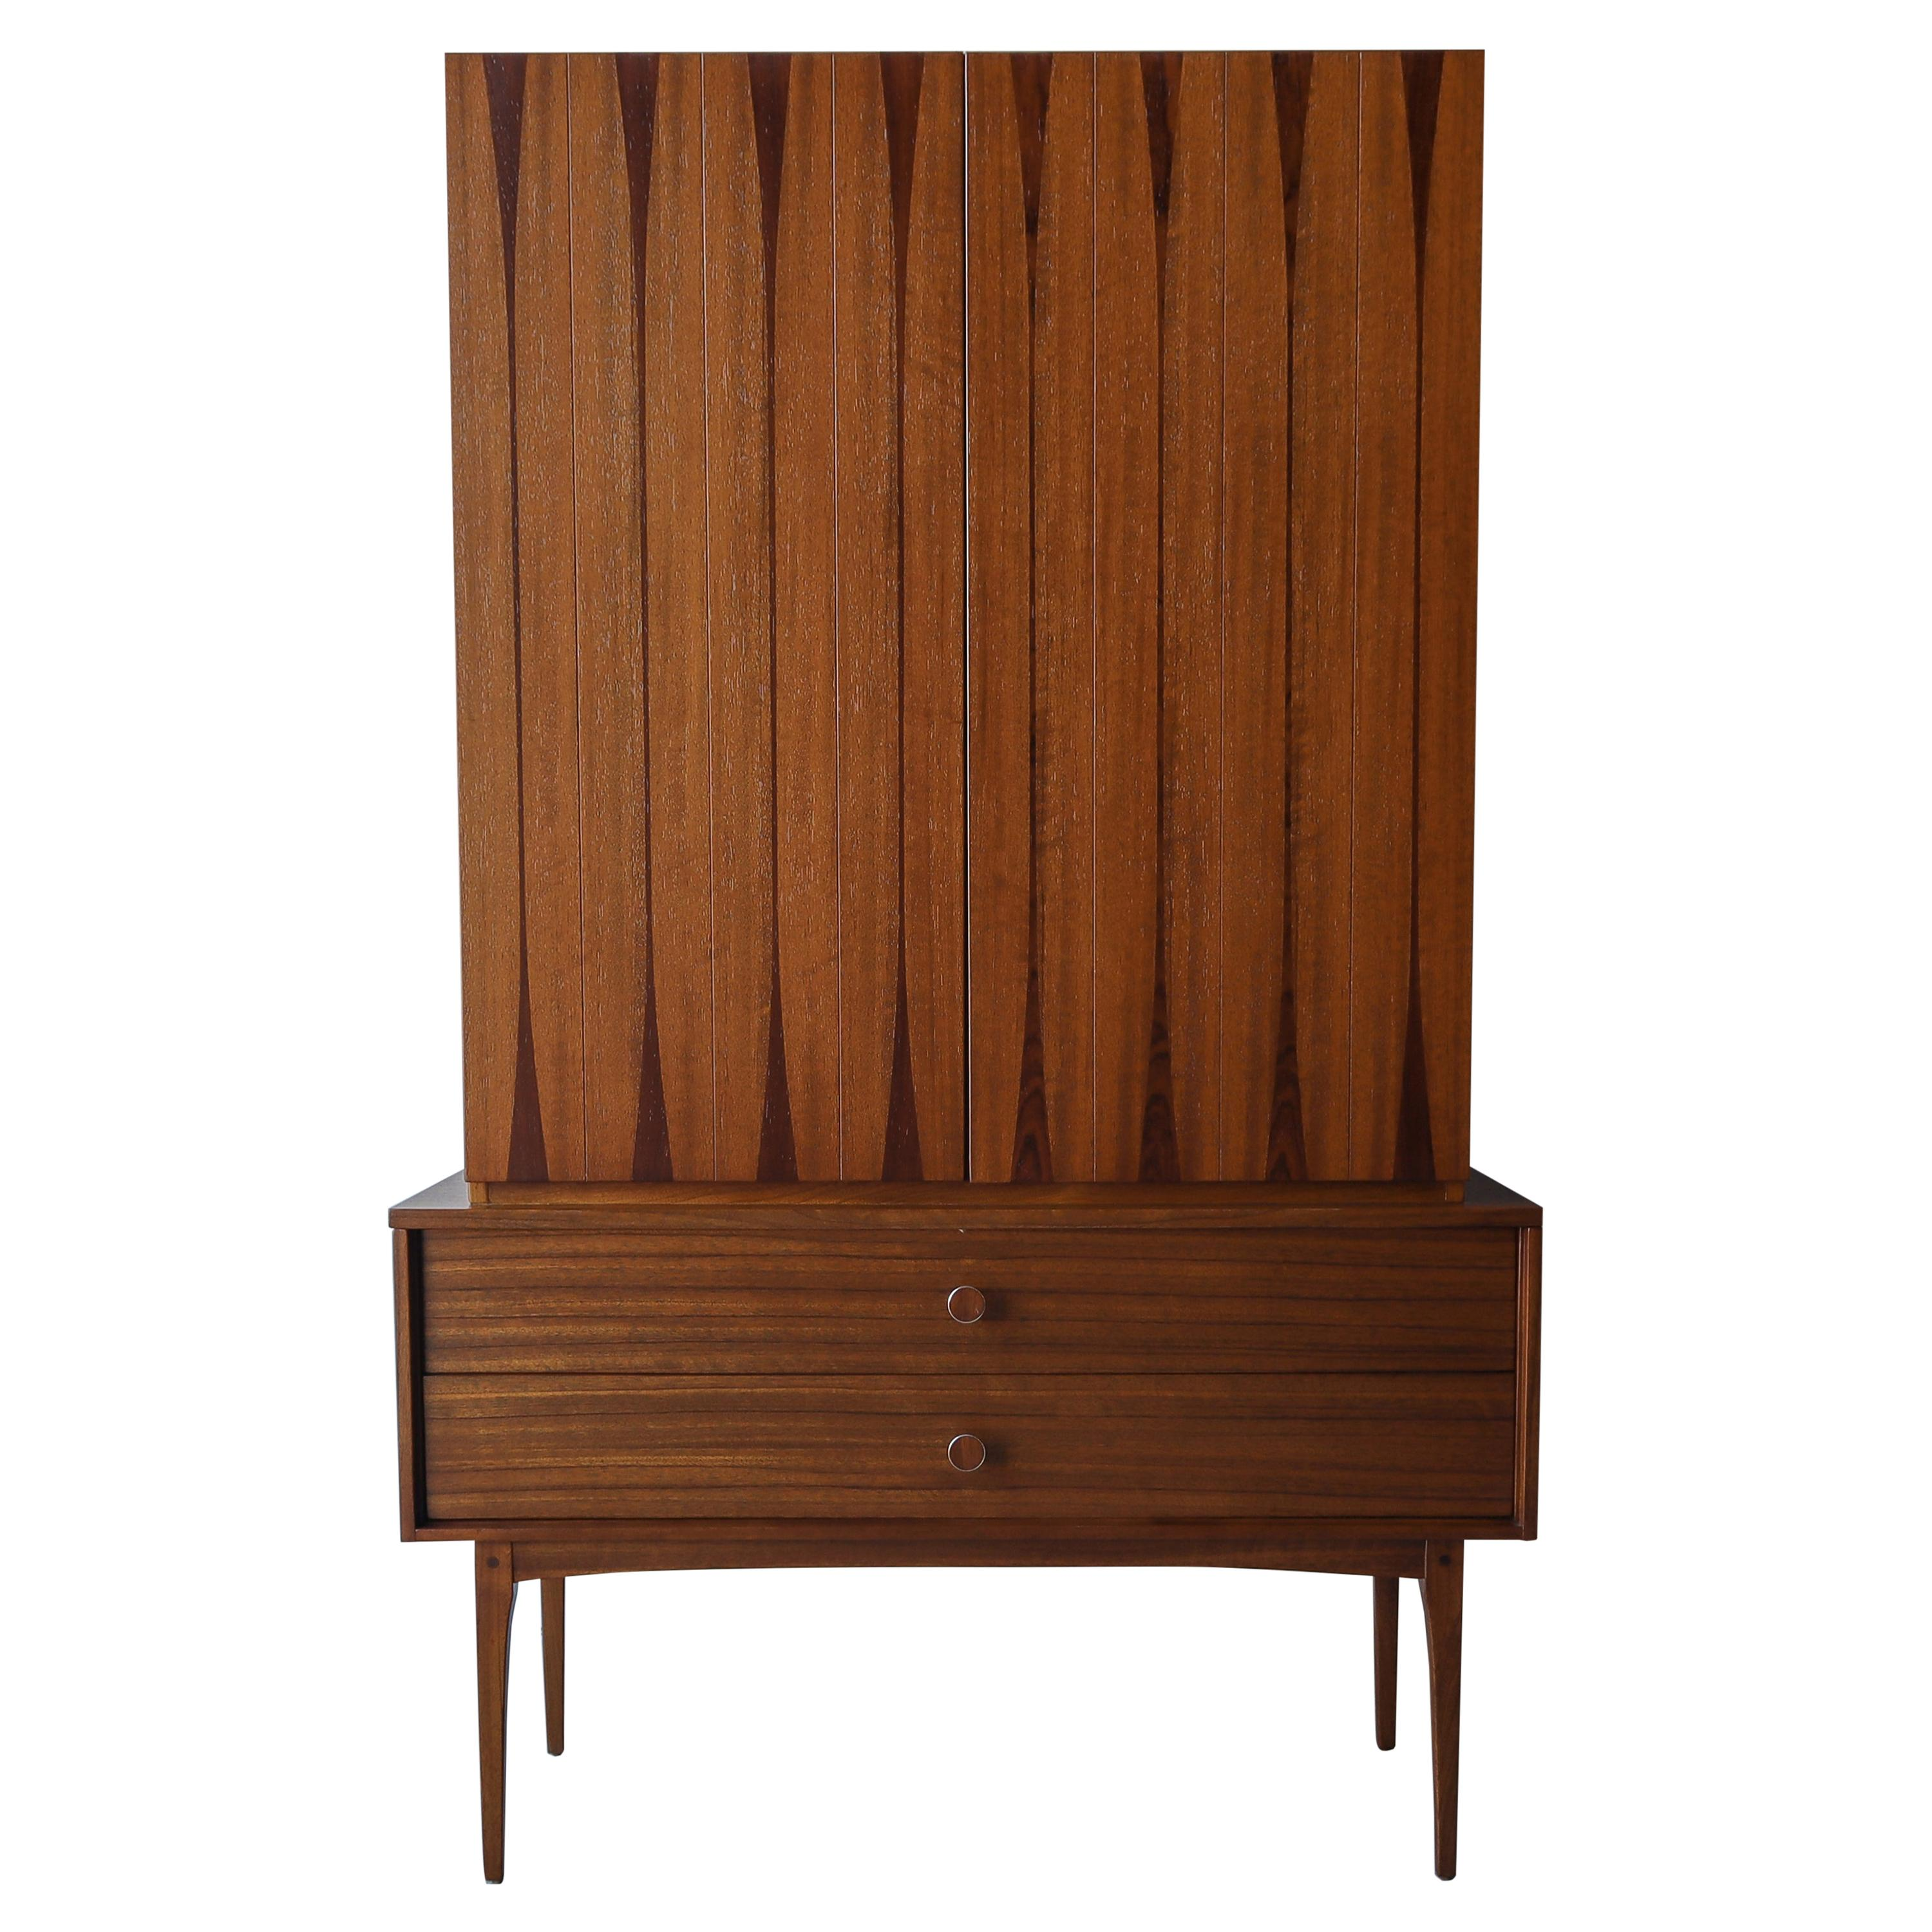 Rare Walnut and Rosewood Mid Century Armoire Dresser by Lane